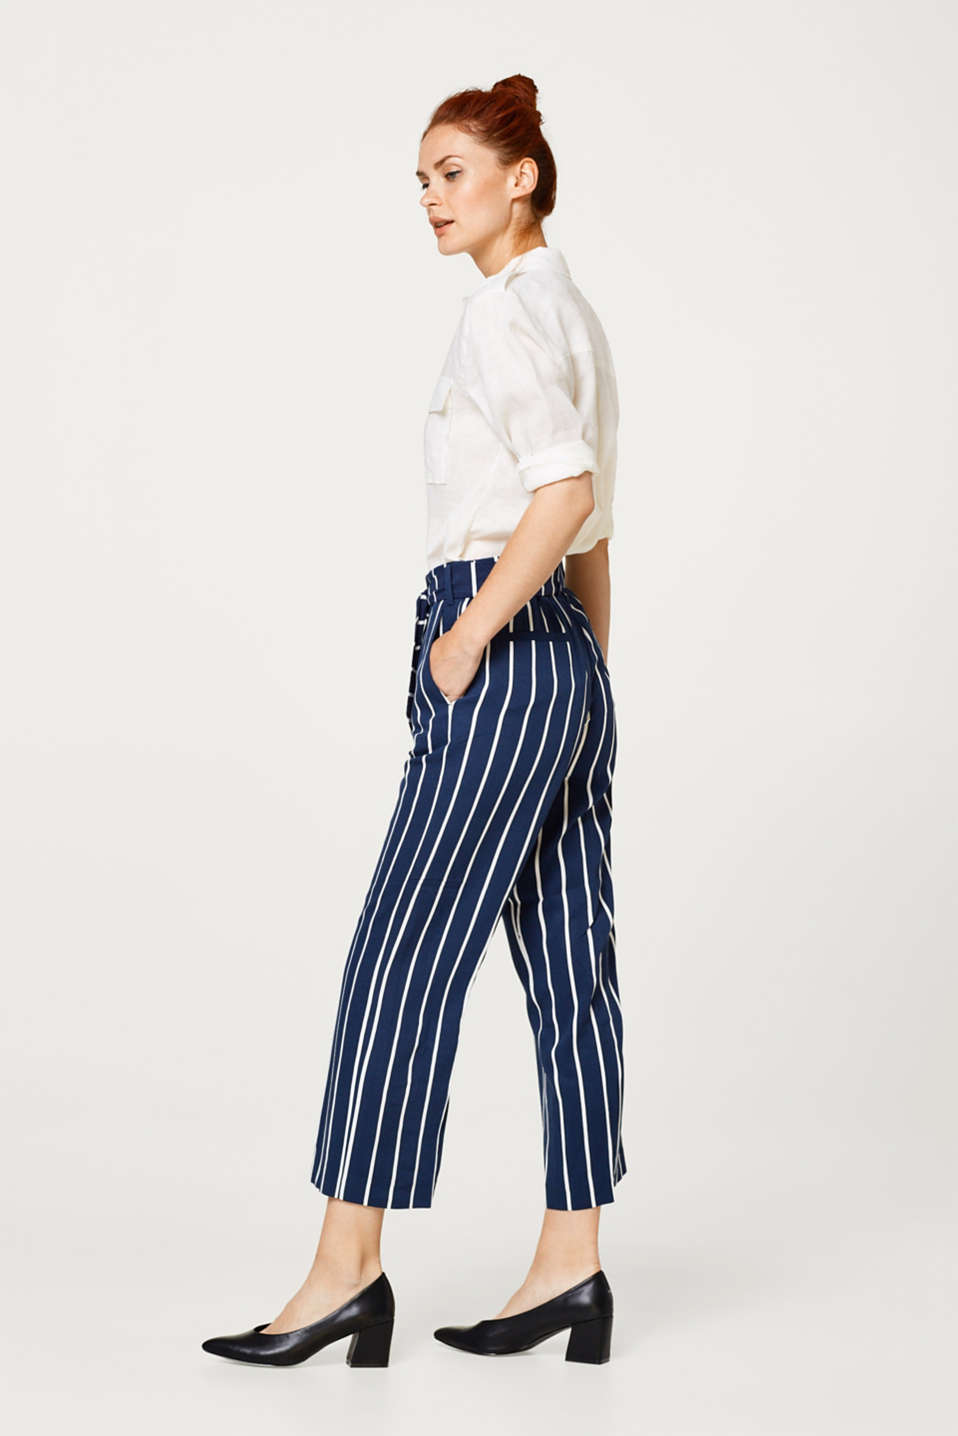 Lightweight culottes with distinctive stripes